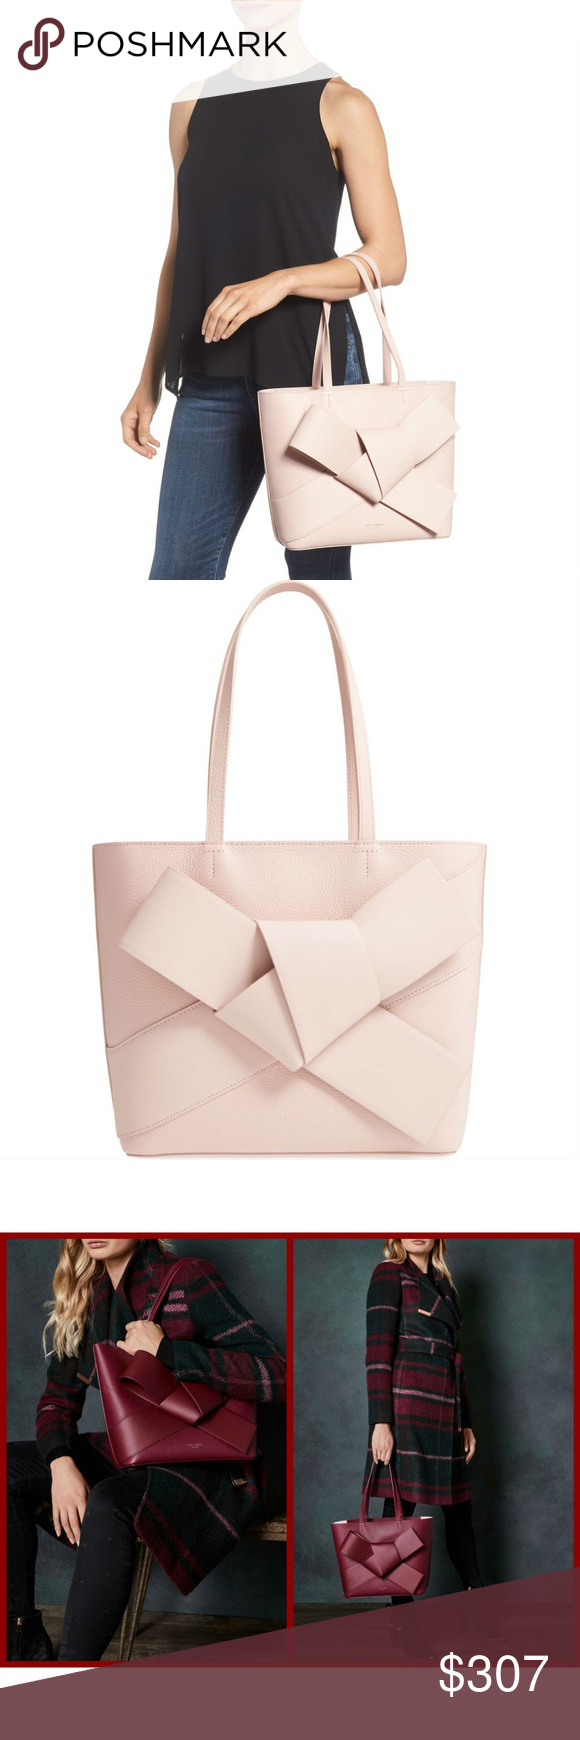 305faddde4 Ted Baker ALLIIE Giant Knot Leather Shopper Bag Color: 51-Dusty Pink Tie  your outfit together with Ted's statement ALLIE shopper. Perfect for  carrying your ...